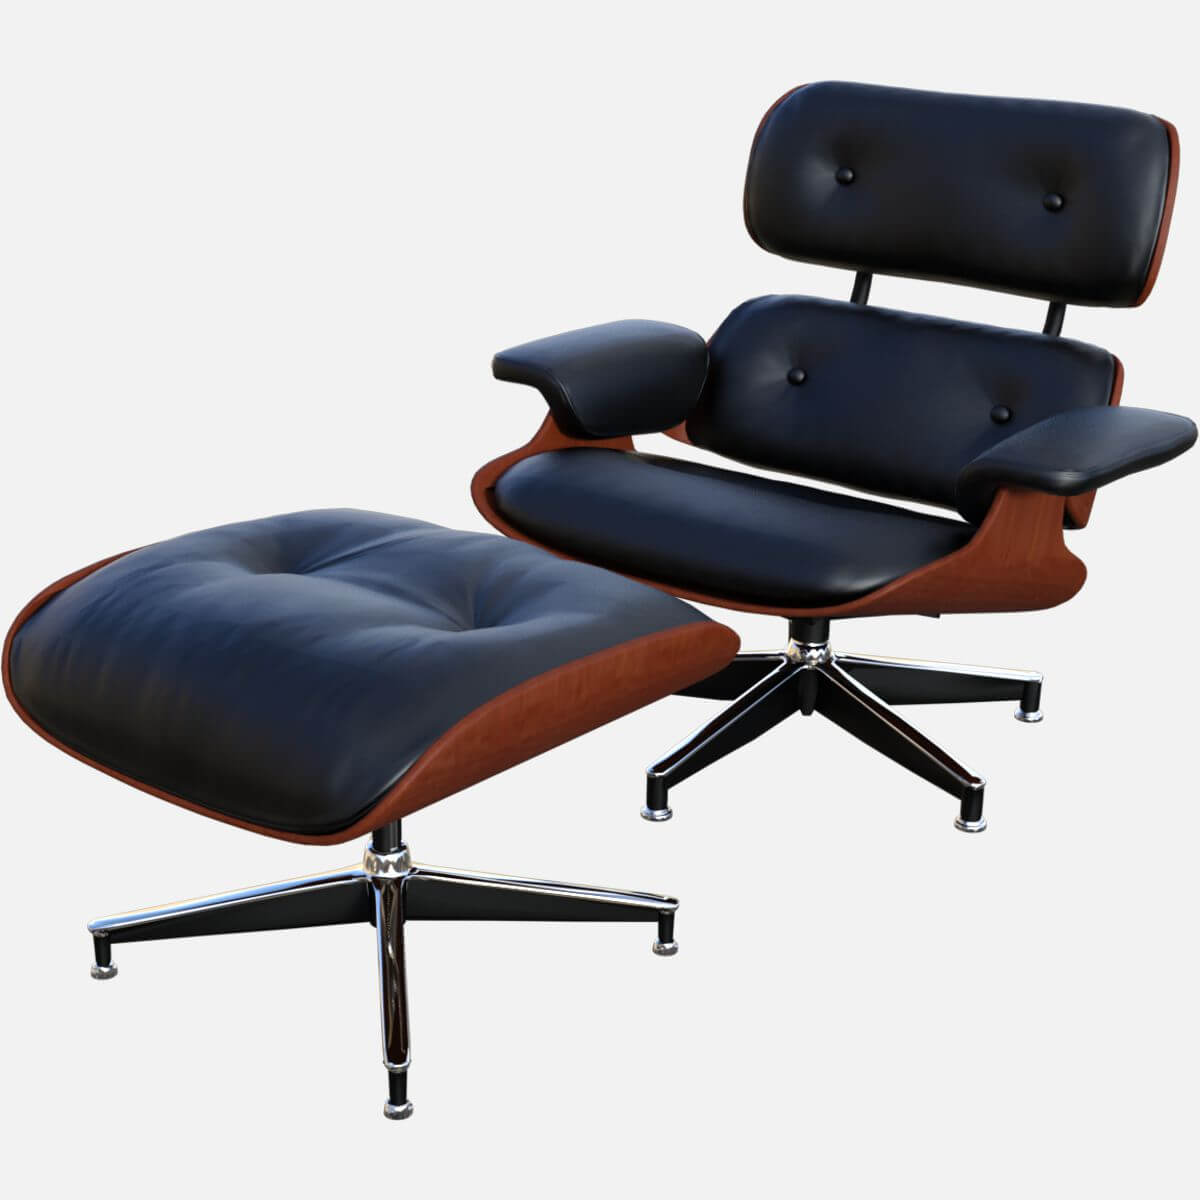 furniture eames style lounge chair and ottoman eames longe chair